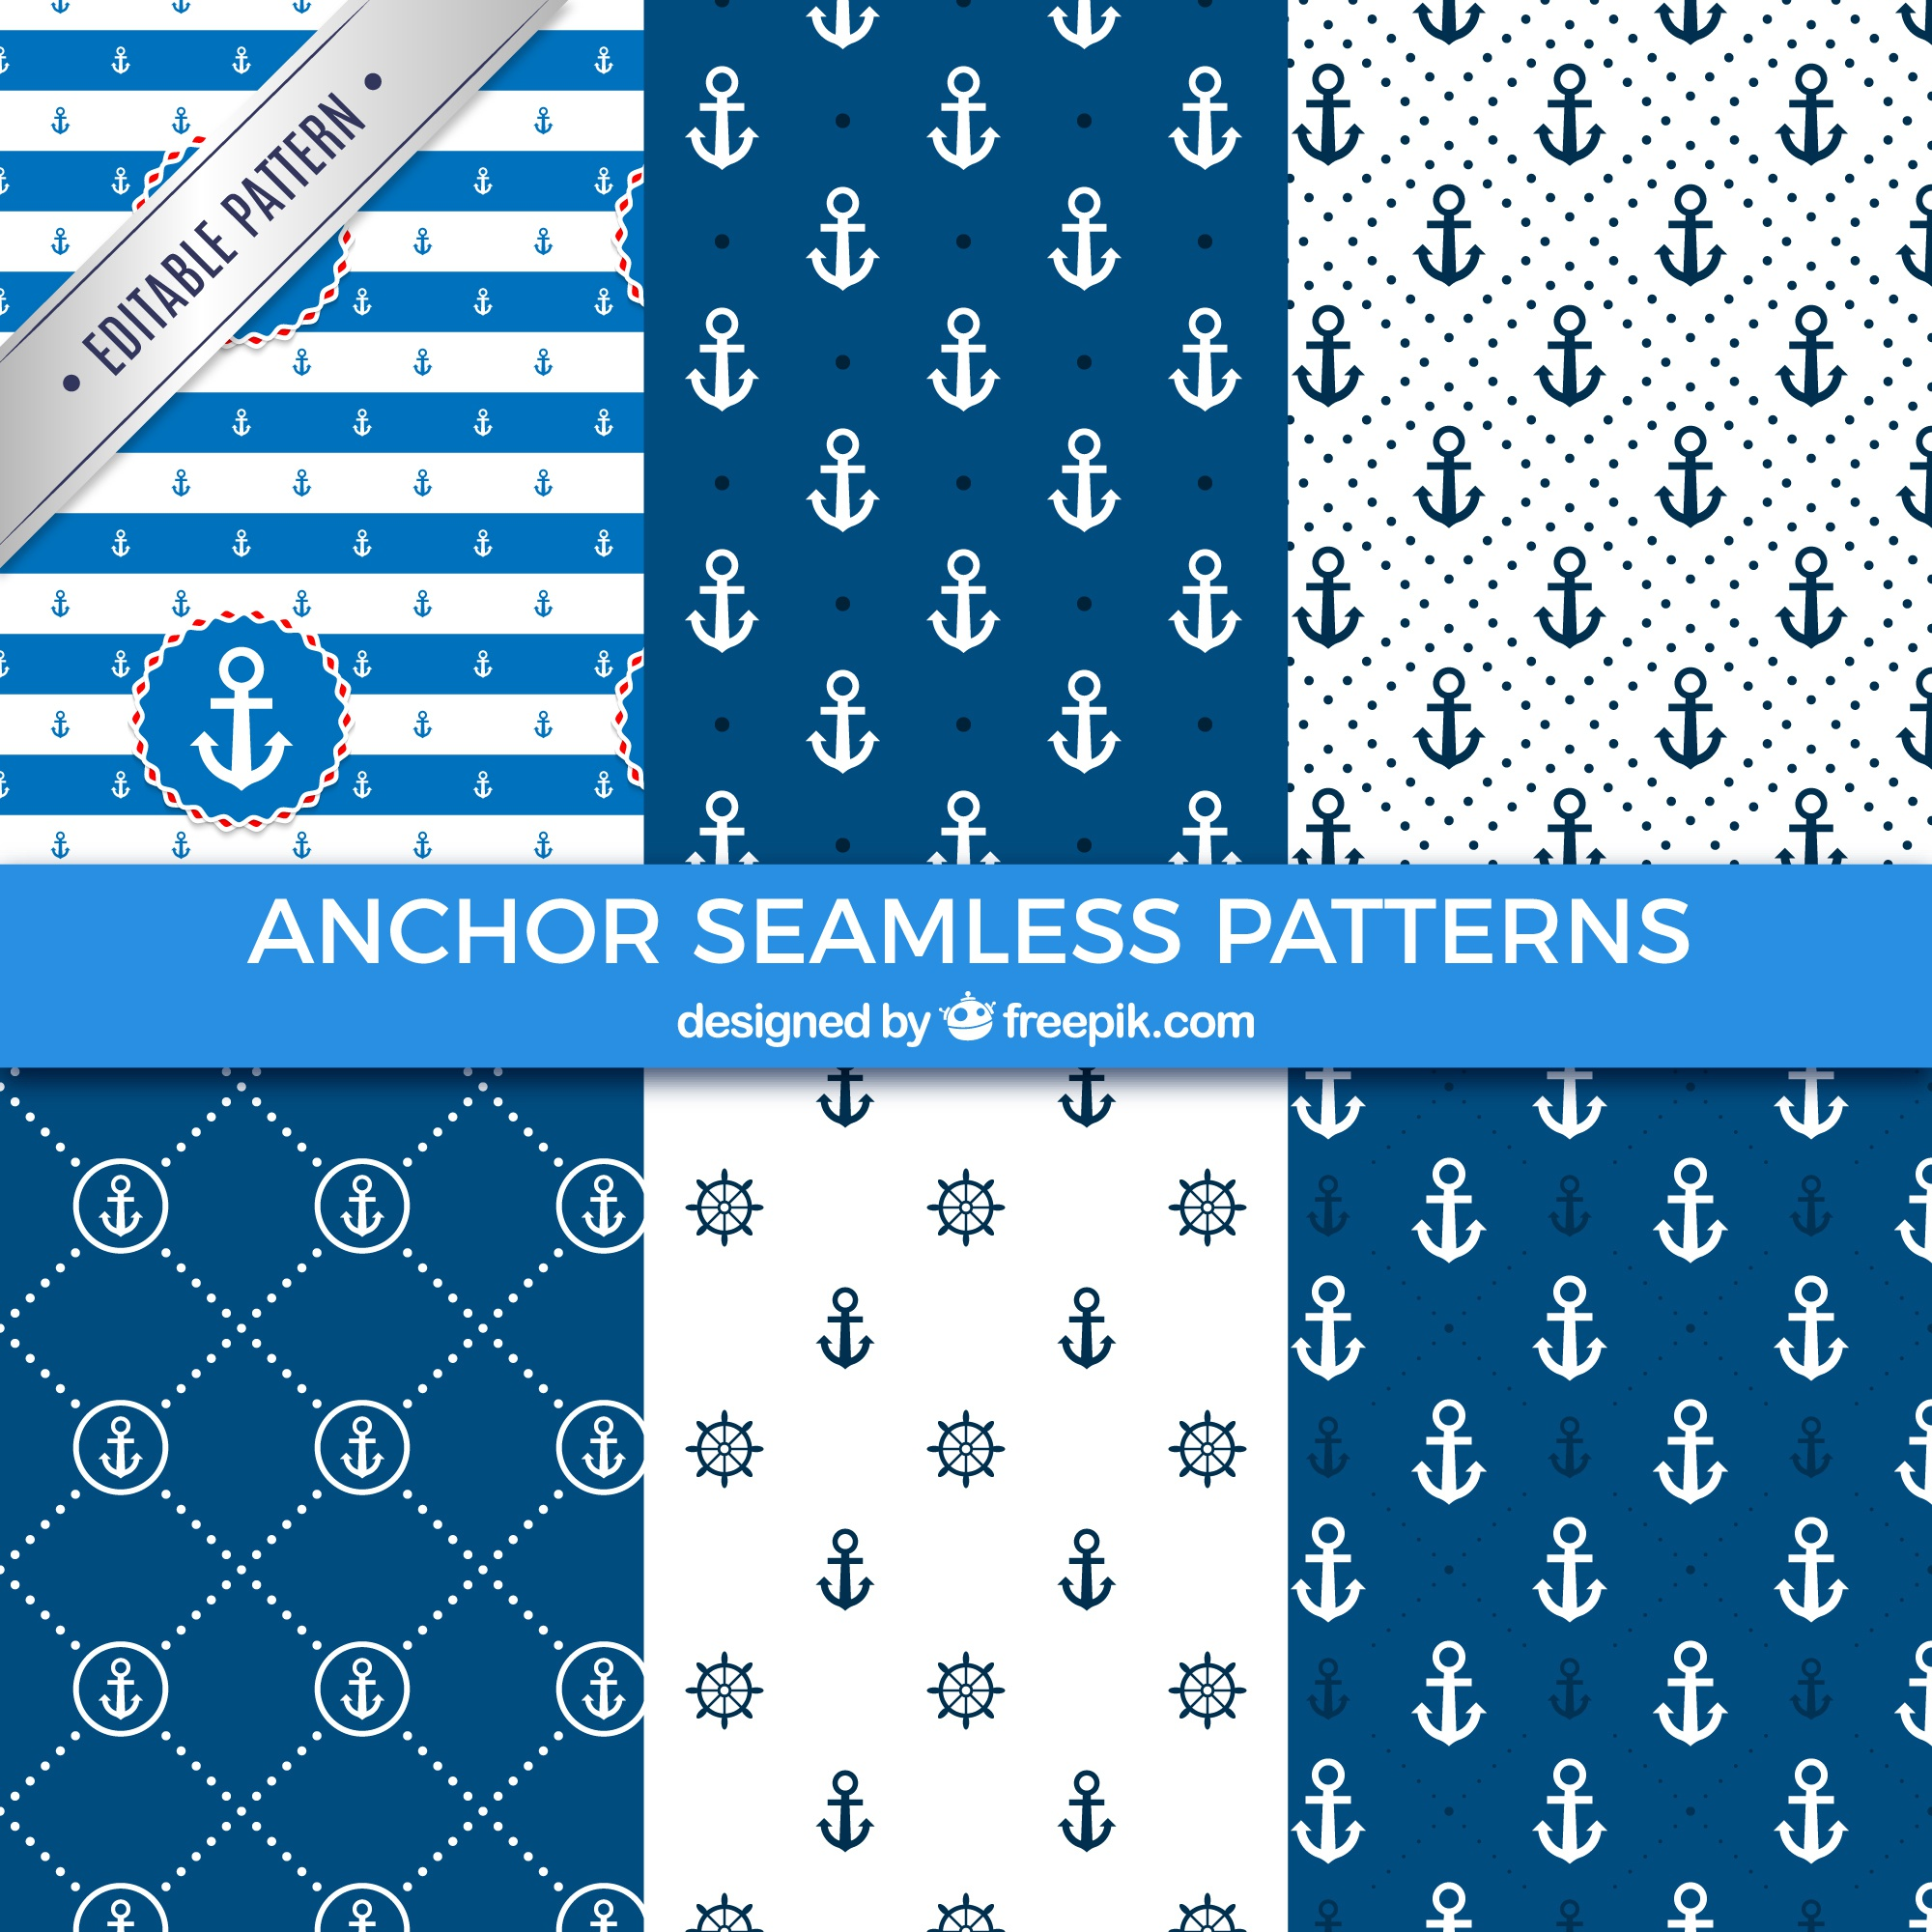 Anchor patterns